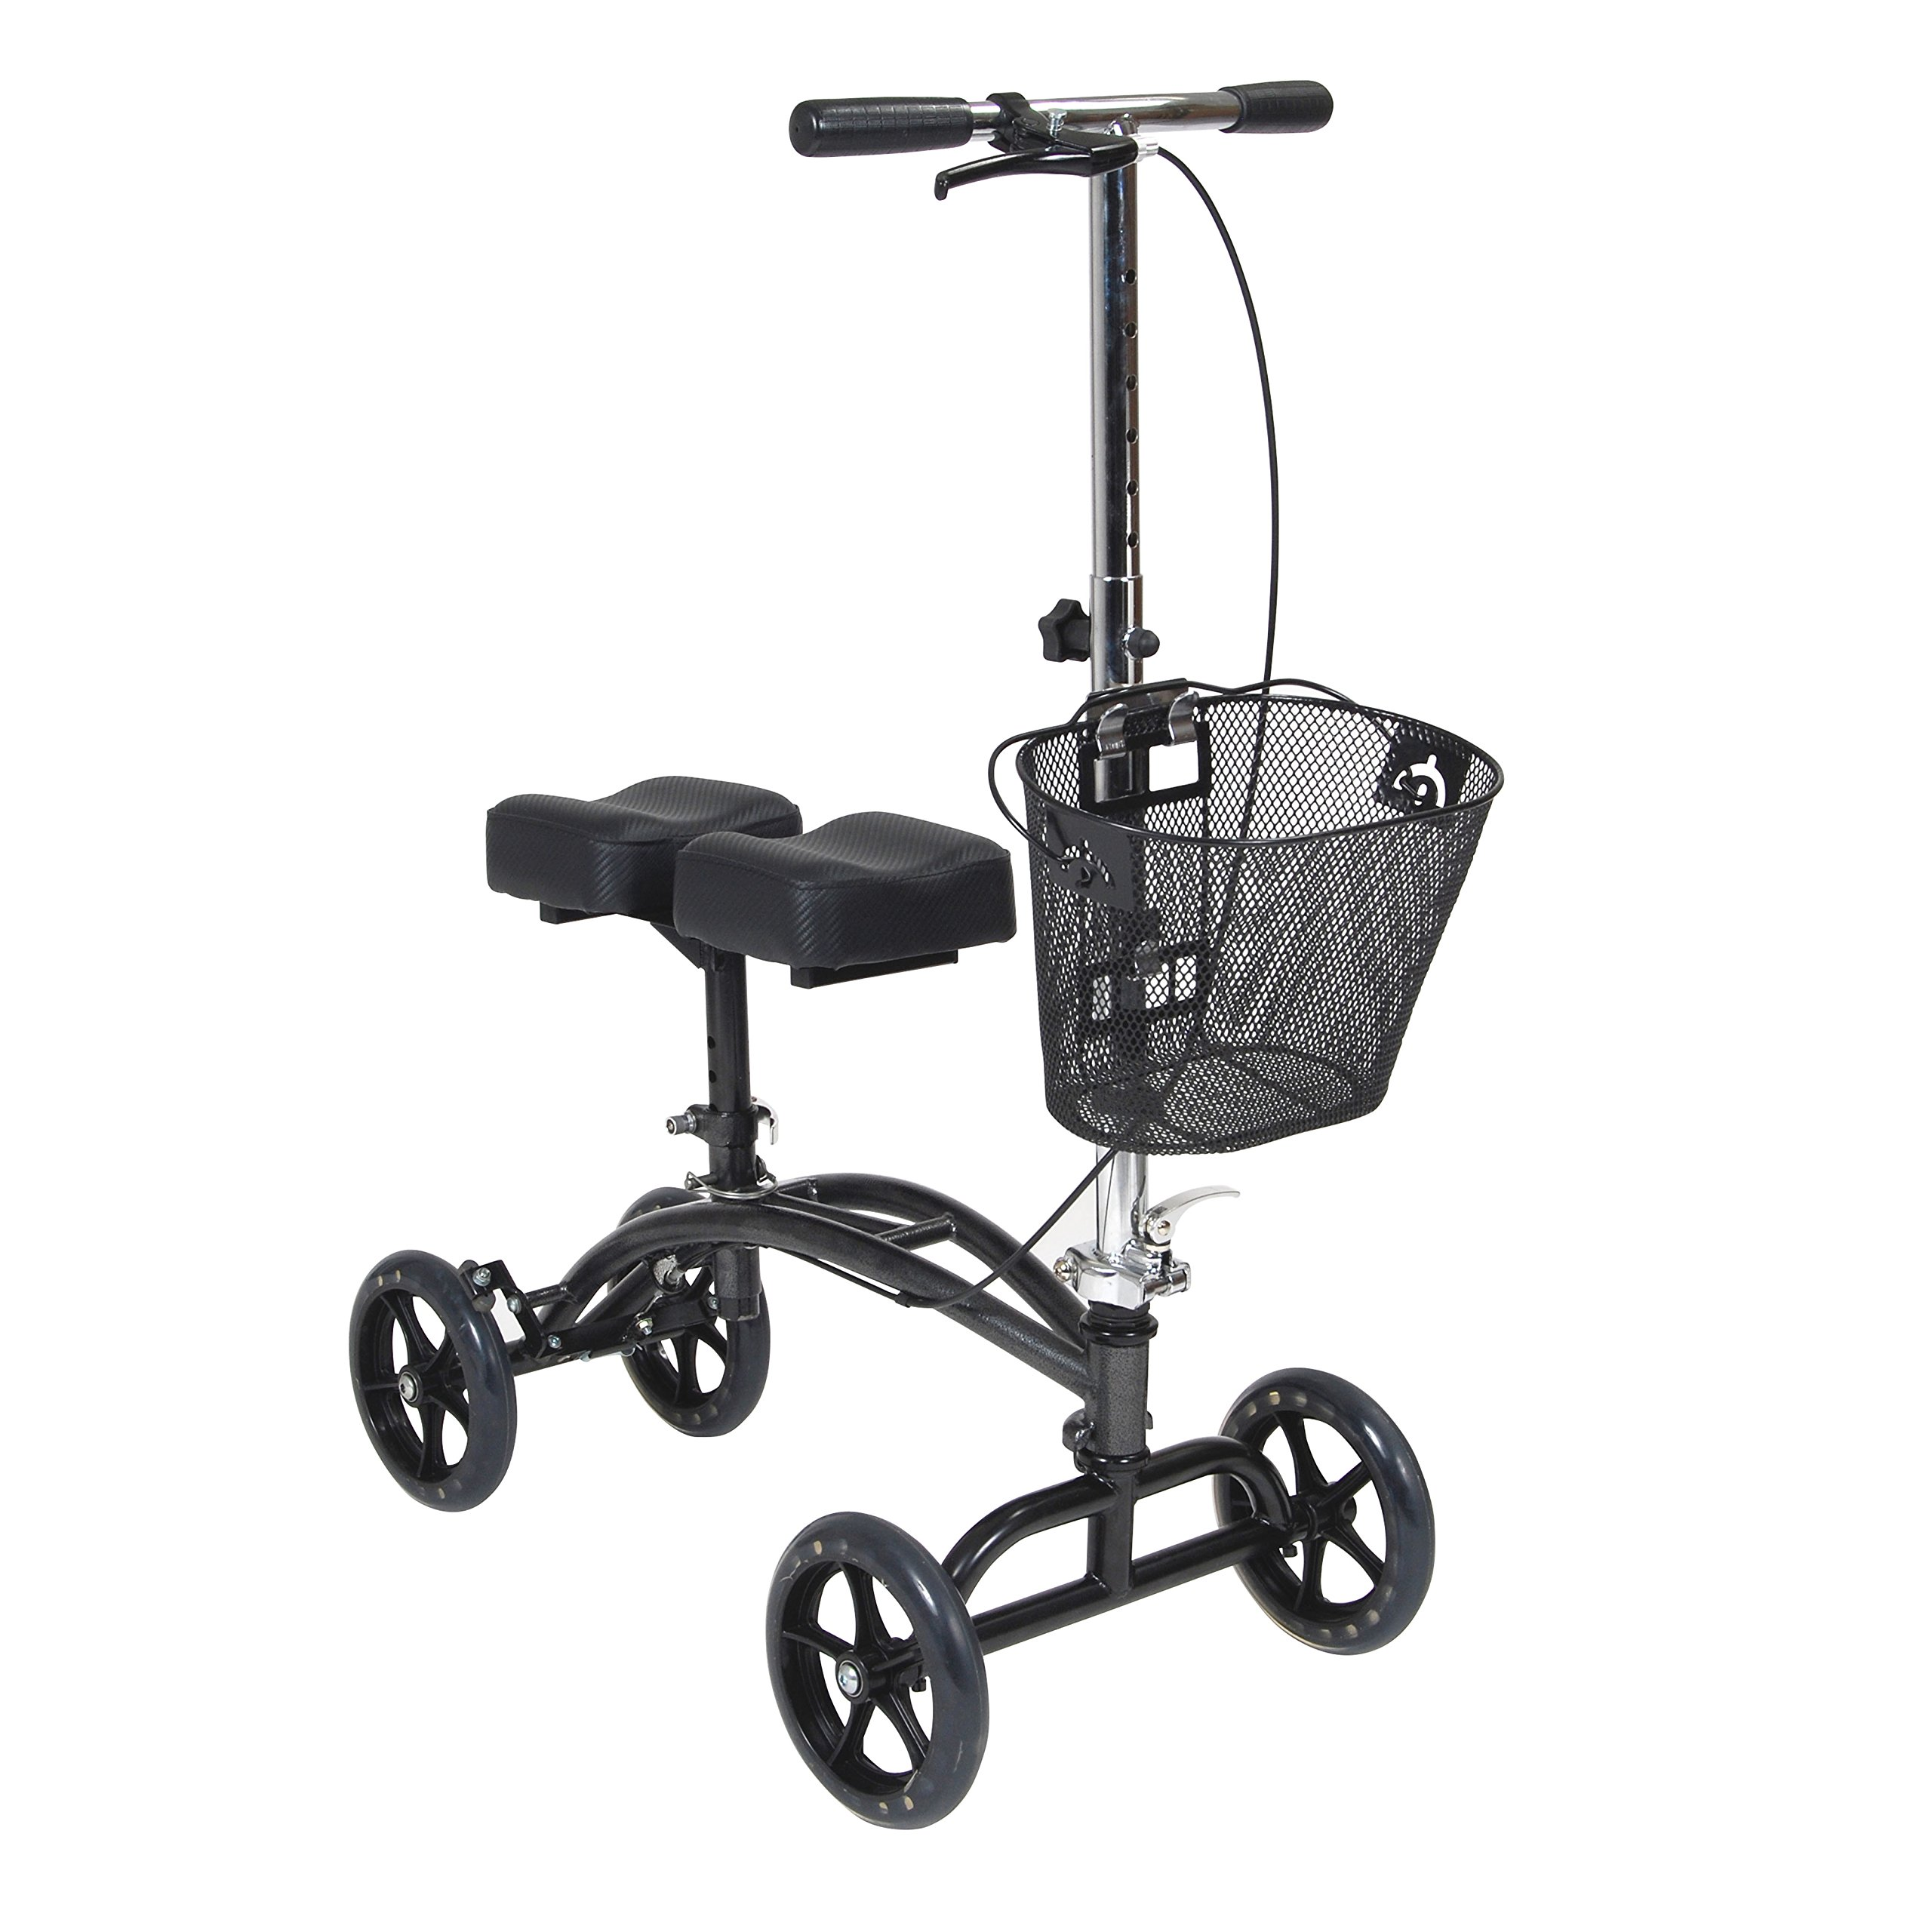 Drive Medical Dual Pad Steerable Knee Walker with Basket, Alternative to Crutches by Drive Medical